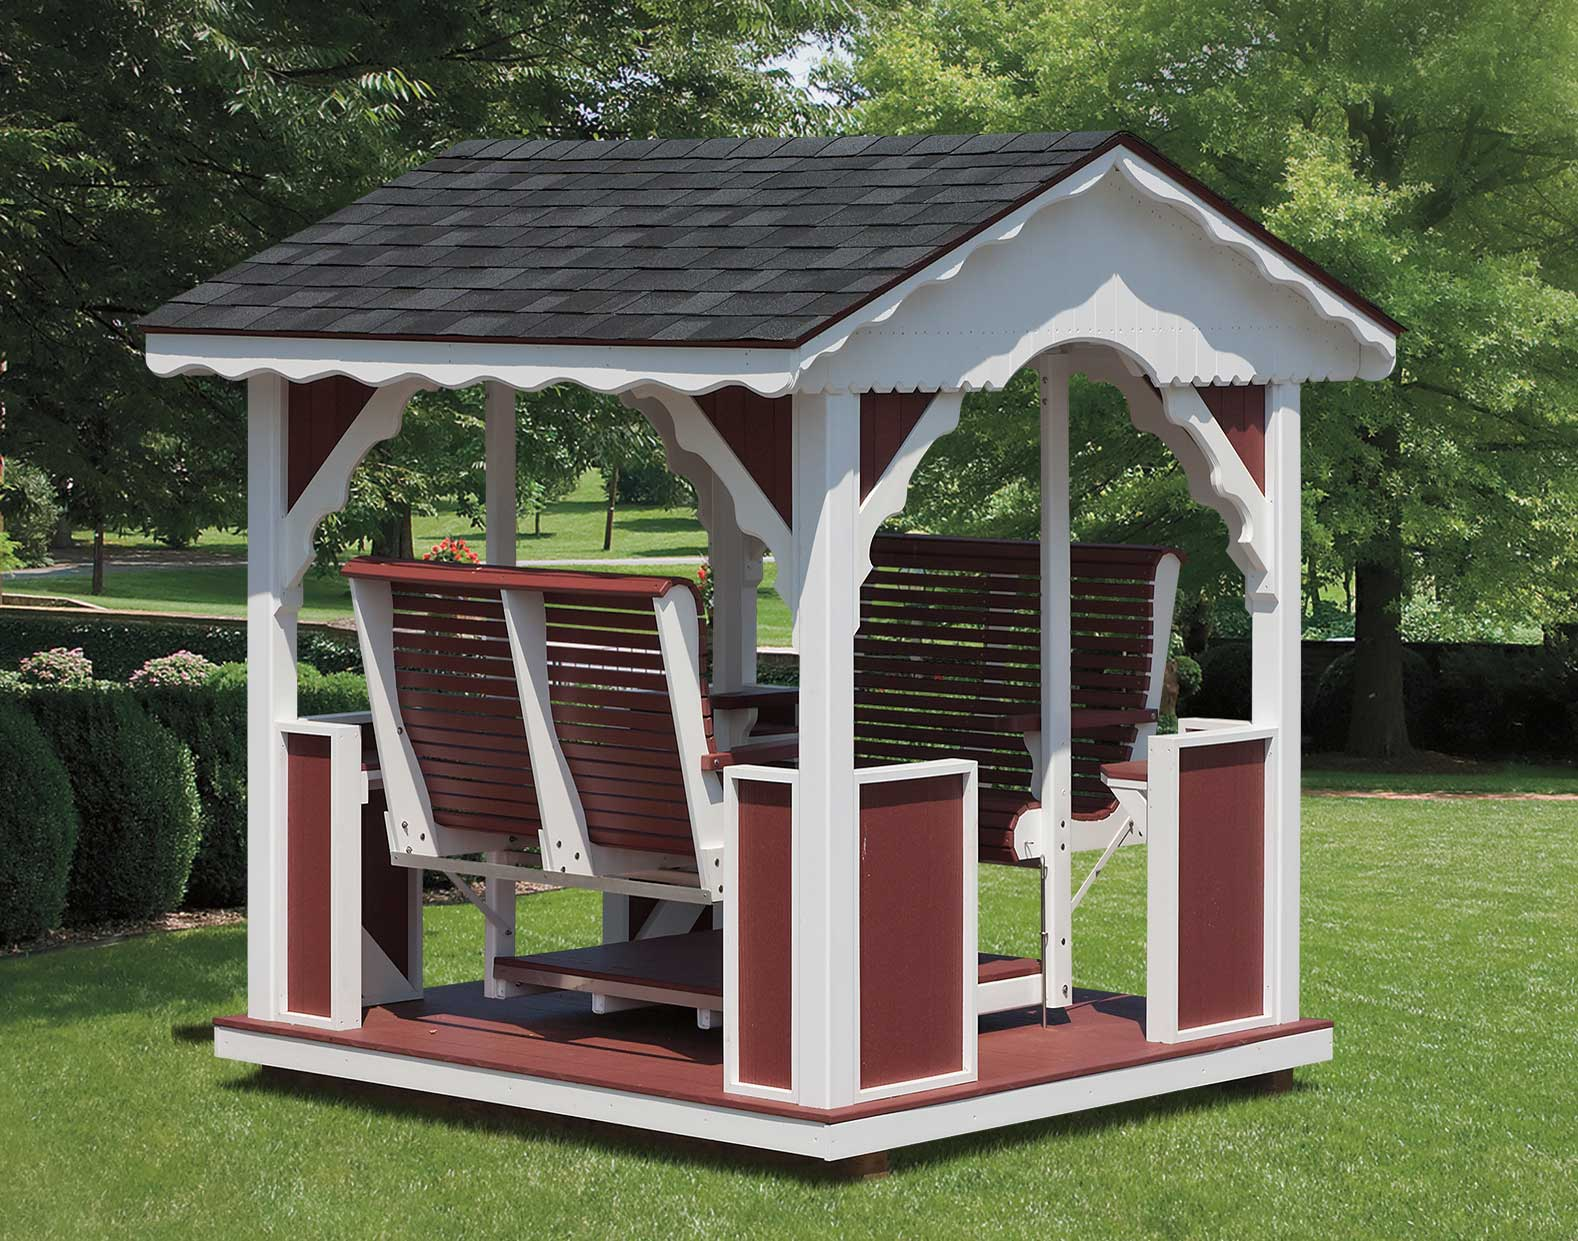 Poly Lumber Outdoor Furniture Vinyl & Poly-Lumber Gable Gazebo Swing